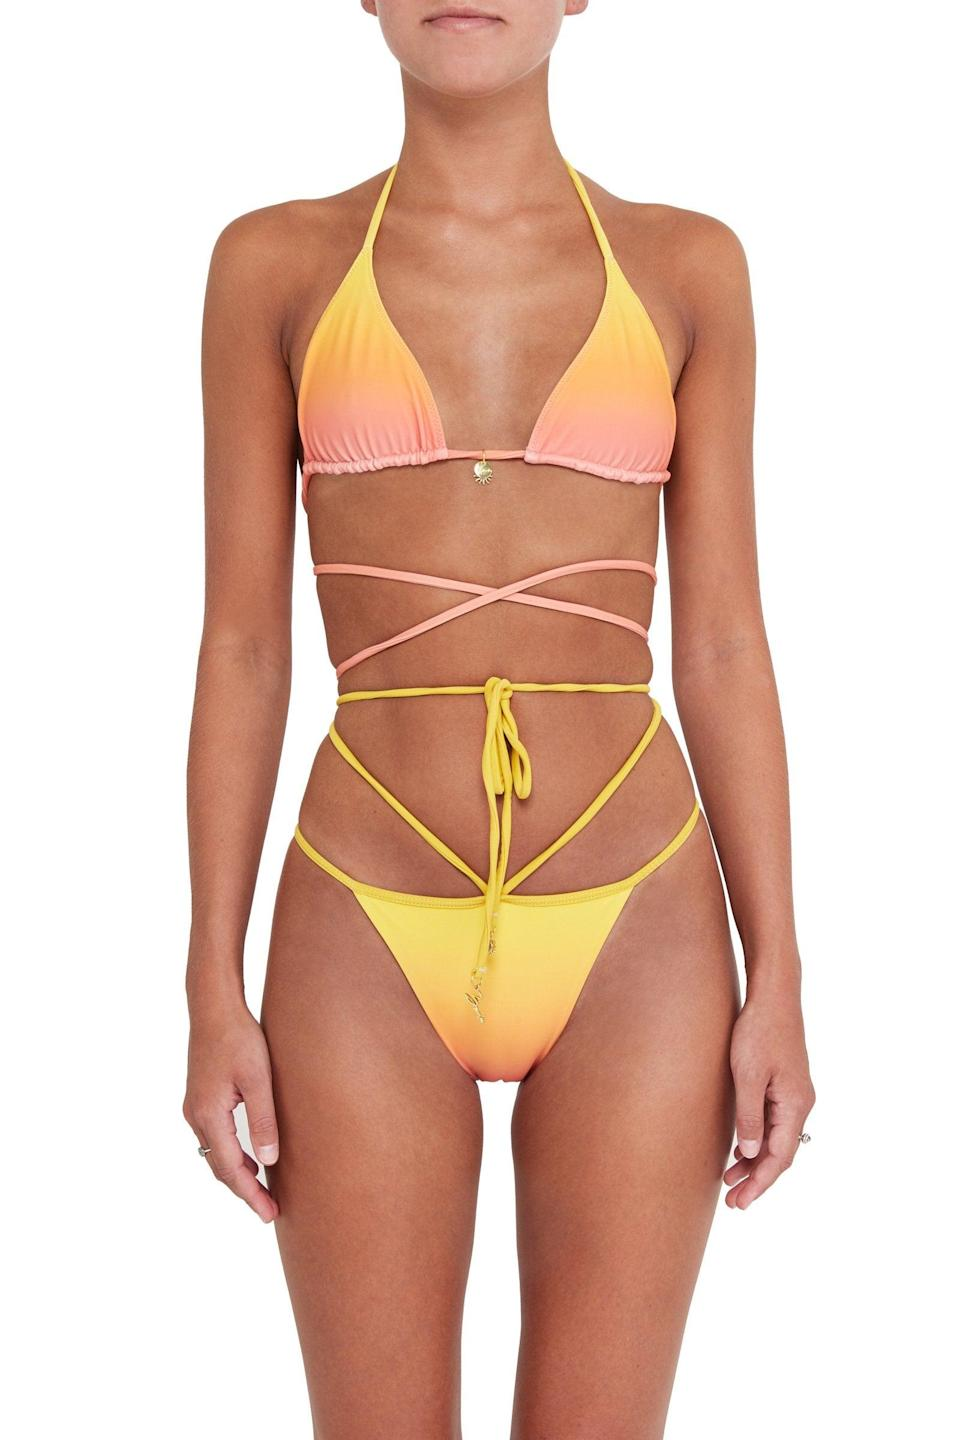 """<br><br><strong>Bamba Swim</strong> Sol Top, $, available at <a href=""""https://go.skimresources.com/?id=30283X879131&url=https%3A%2F%2Fwww.bambaswim.com%2Fcollections%2Fnew-arrivals%2Fproducts%2Fsol-top-sunset"""" rel=""""nofollow noopener"""" target=""""_blank"""" data-ylk=""""slk:Bamba Swim"""" class=""""link rapid-noclick-resp"""">Bamba Swim</a><br><br><strong>Bamba Swim</strong> Sol Bottoms, $, available at <a href=""""https://go.skimresources.com/?id=30283X879131&url=https%3A%2F%2Fwww.bambaswim.com%2Fcollections%2Fnew-arrivals%2Fproducts%2Fsol-bottoms-sunset"""" rel=""""nofollow noopener"""" target=""""_blank"""" data-ylk=""""slk:Bamba Swim"""" class=""""link rapid-noclick-resp"""">Bamba Swim</a>"""